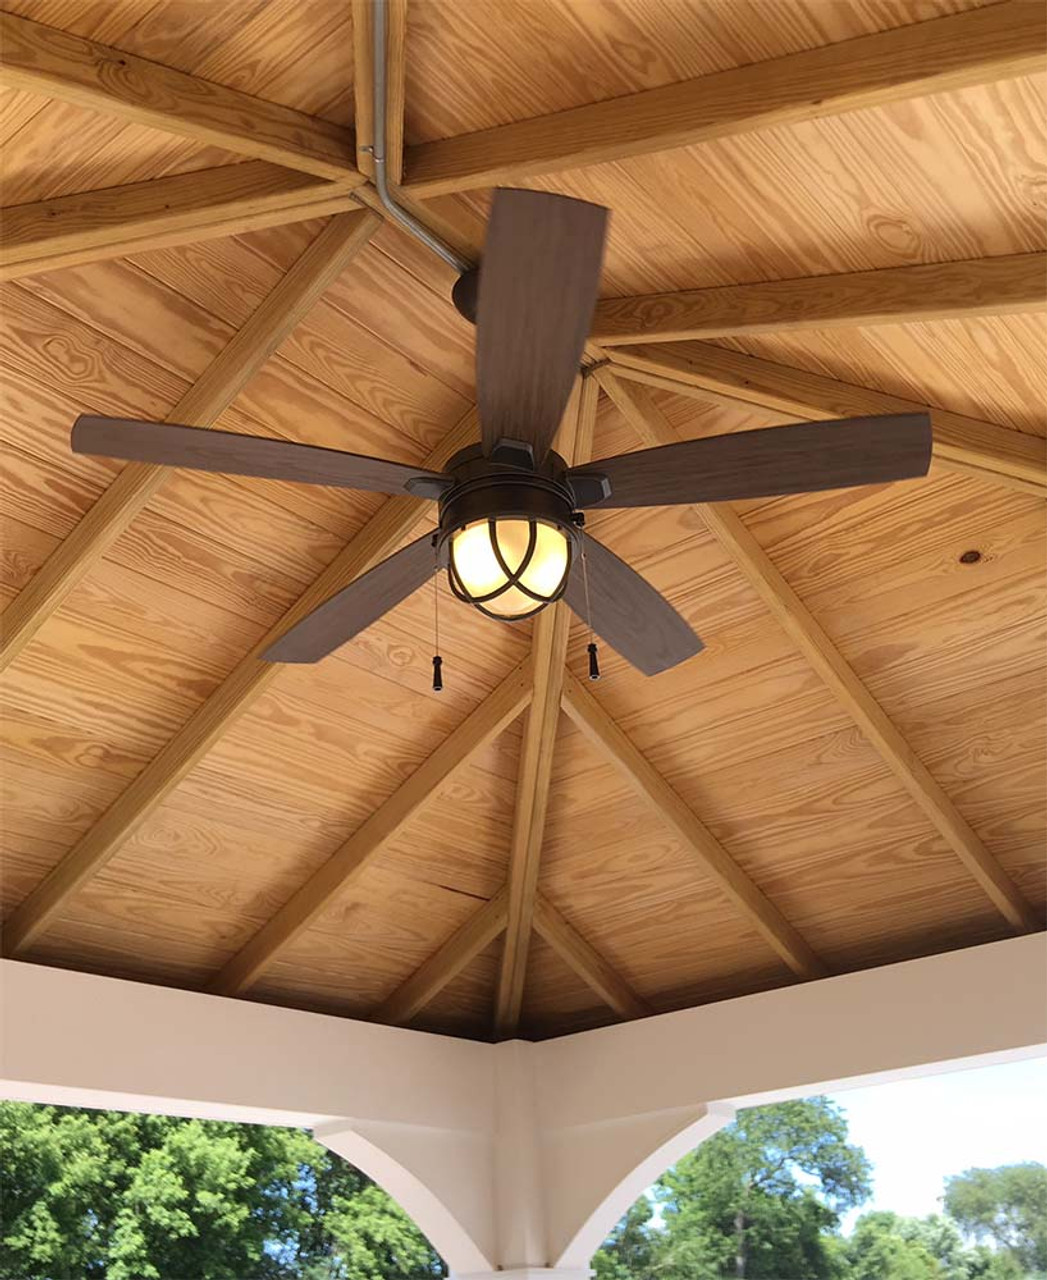 Ceiling Fan in Traditional (Hip) Pavilion Cary, IL